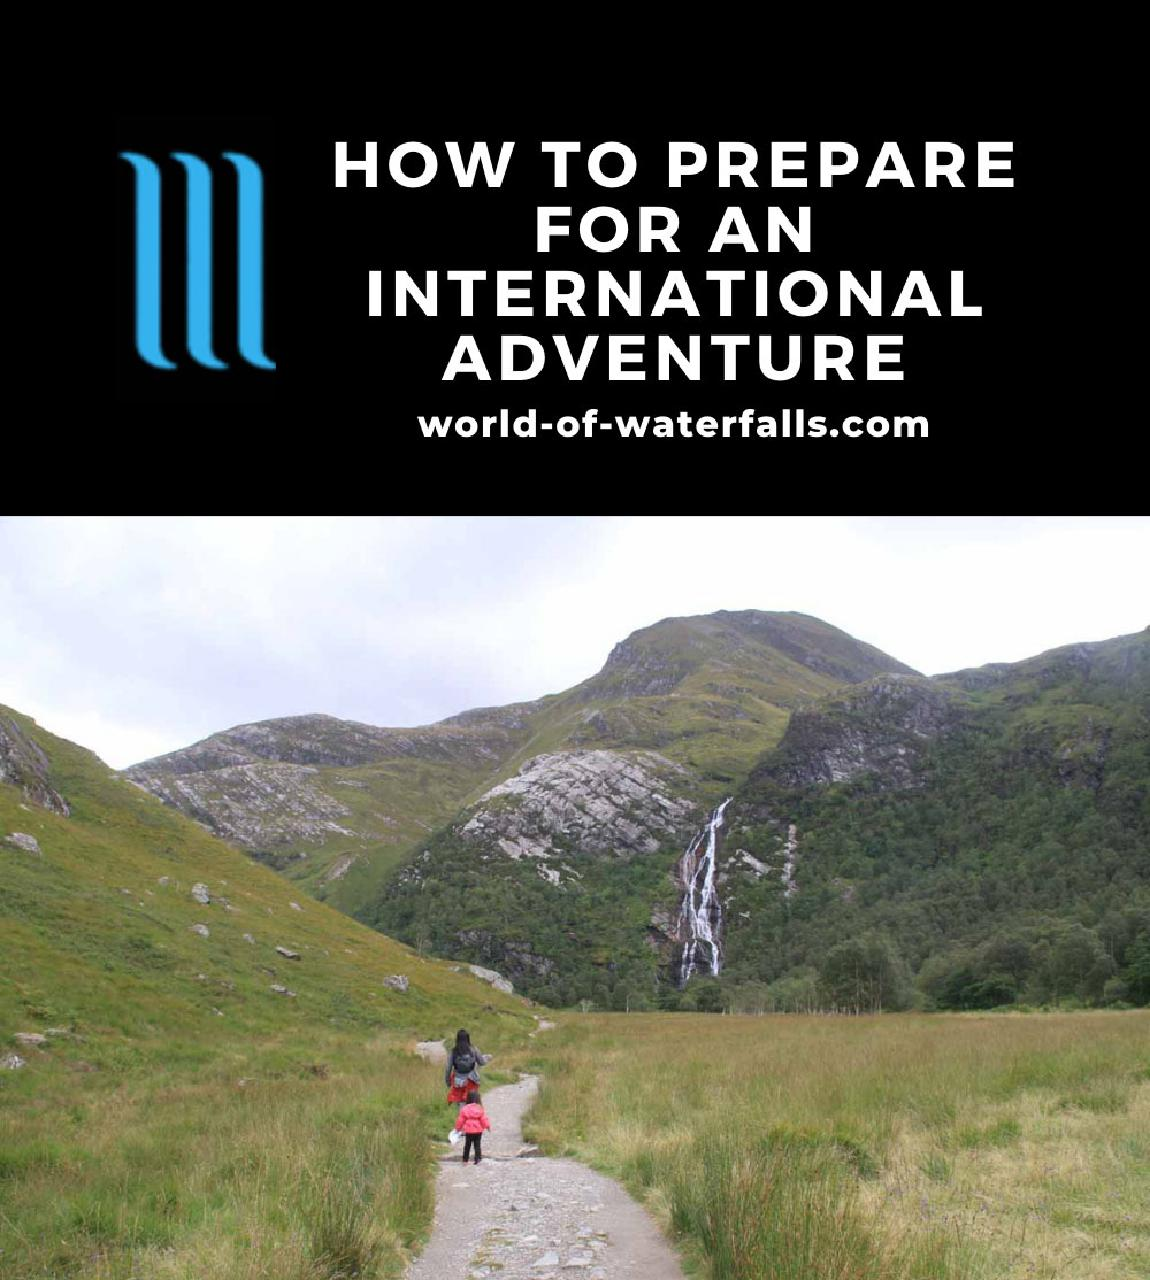 How to Prepare for an International Adventure